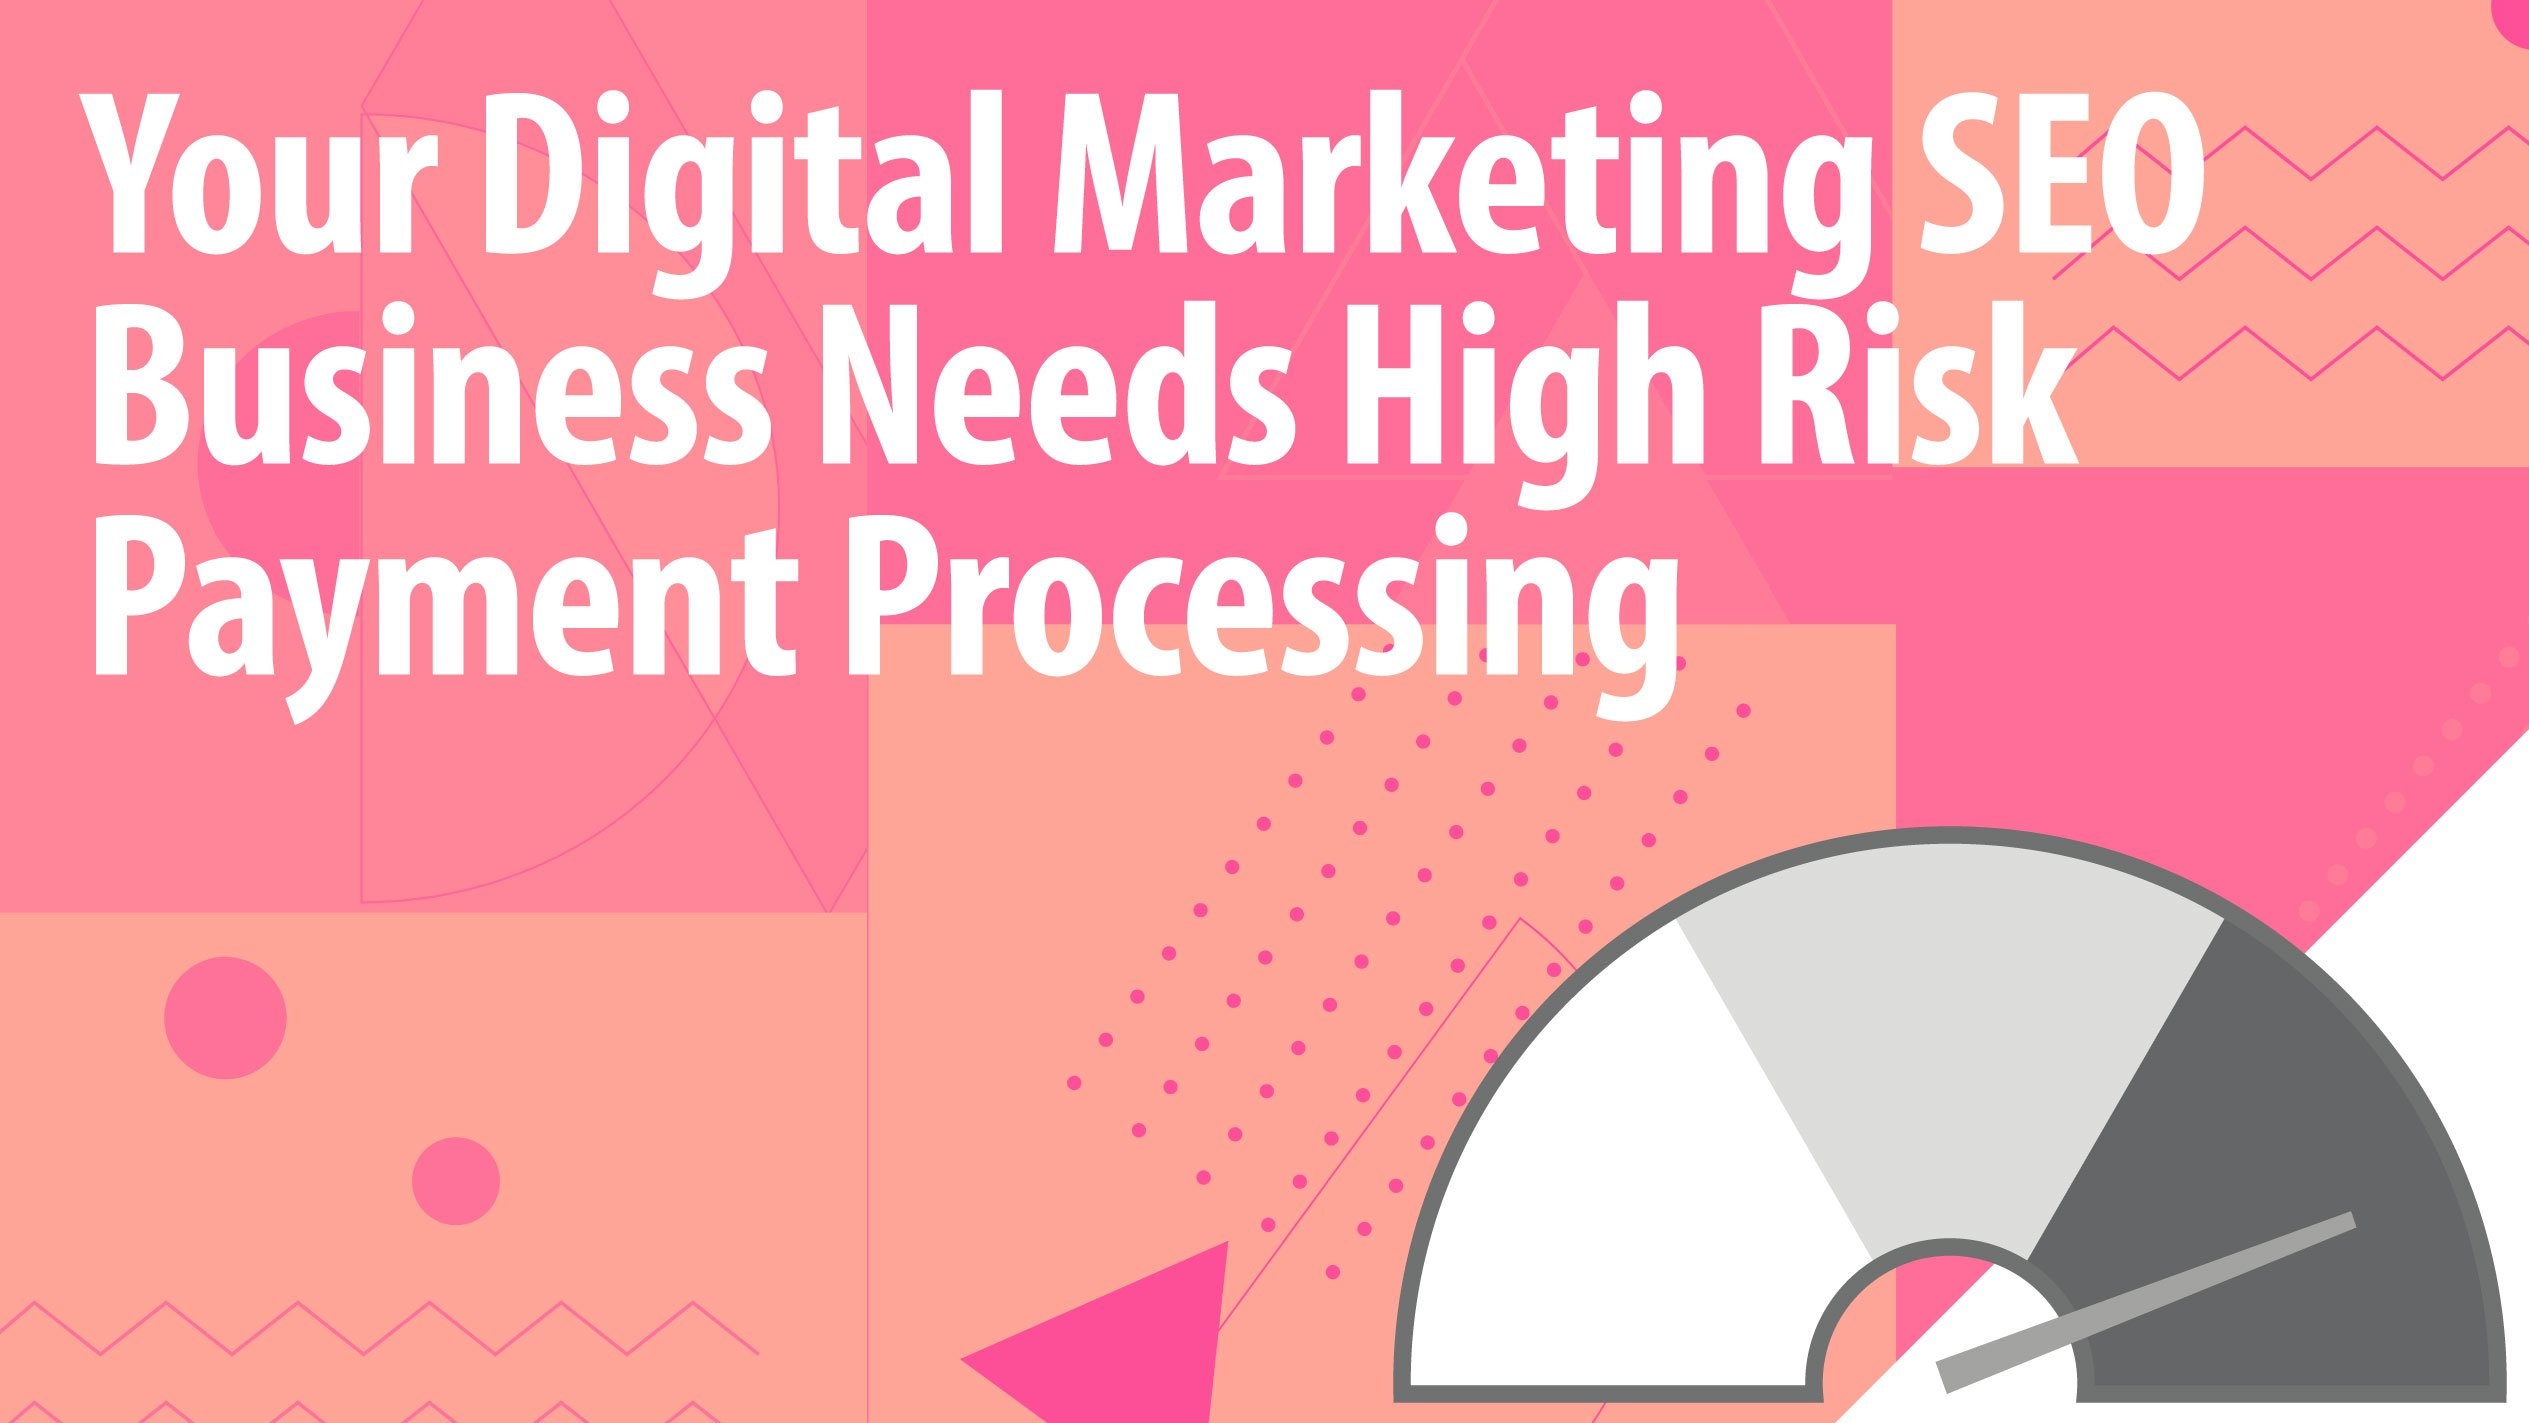 Your Digital Marketing SEO Business Needs High Risk Payment Processing